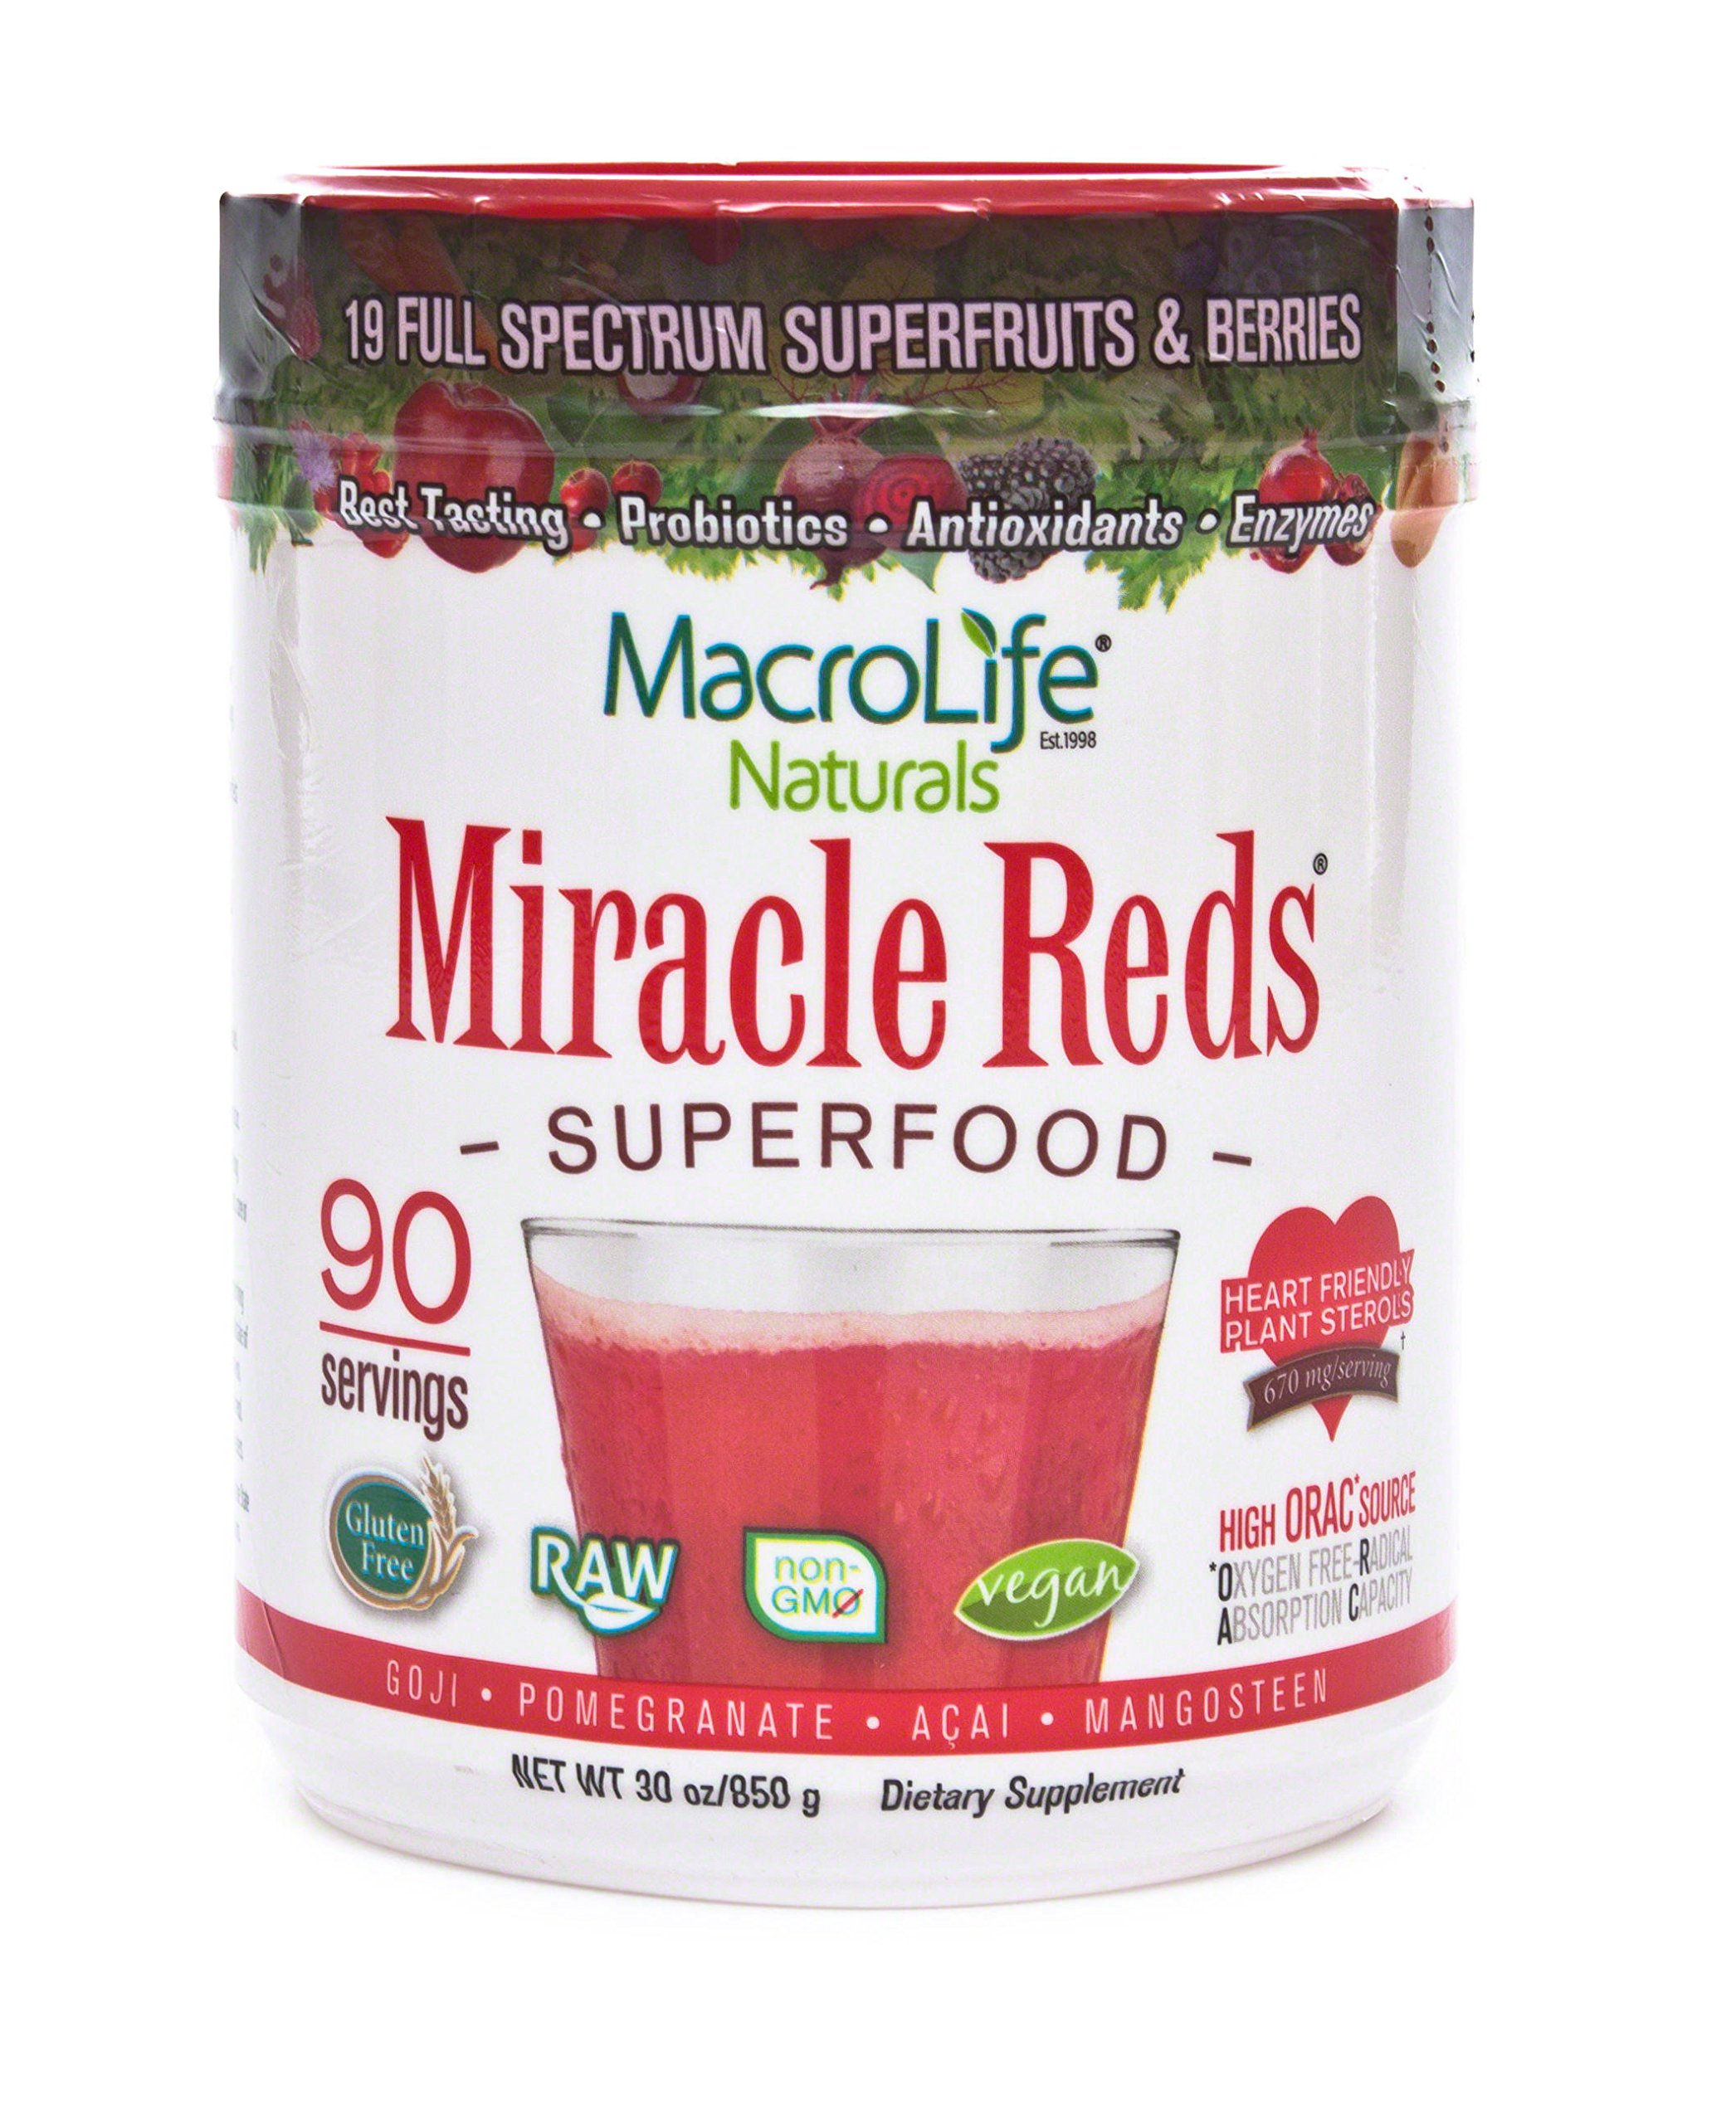 Organic super food supplement with probiotics: Miracle Reds Superfood fruit & veggie drinks powder with ingredient list of vital digestive enzymes, polyphenols, vitamins & minerals for all day energy